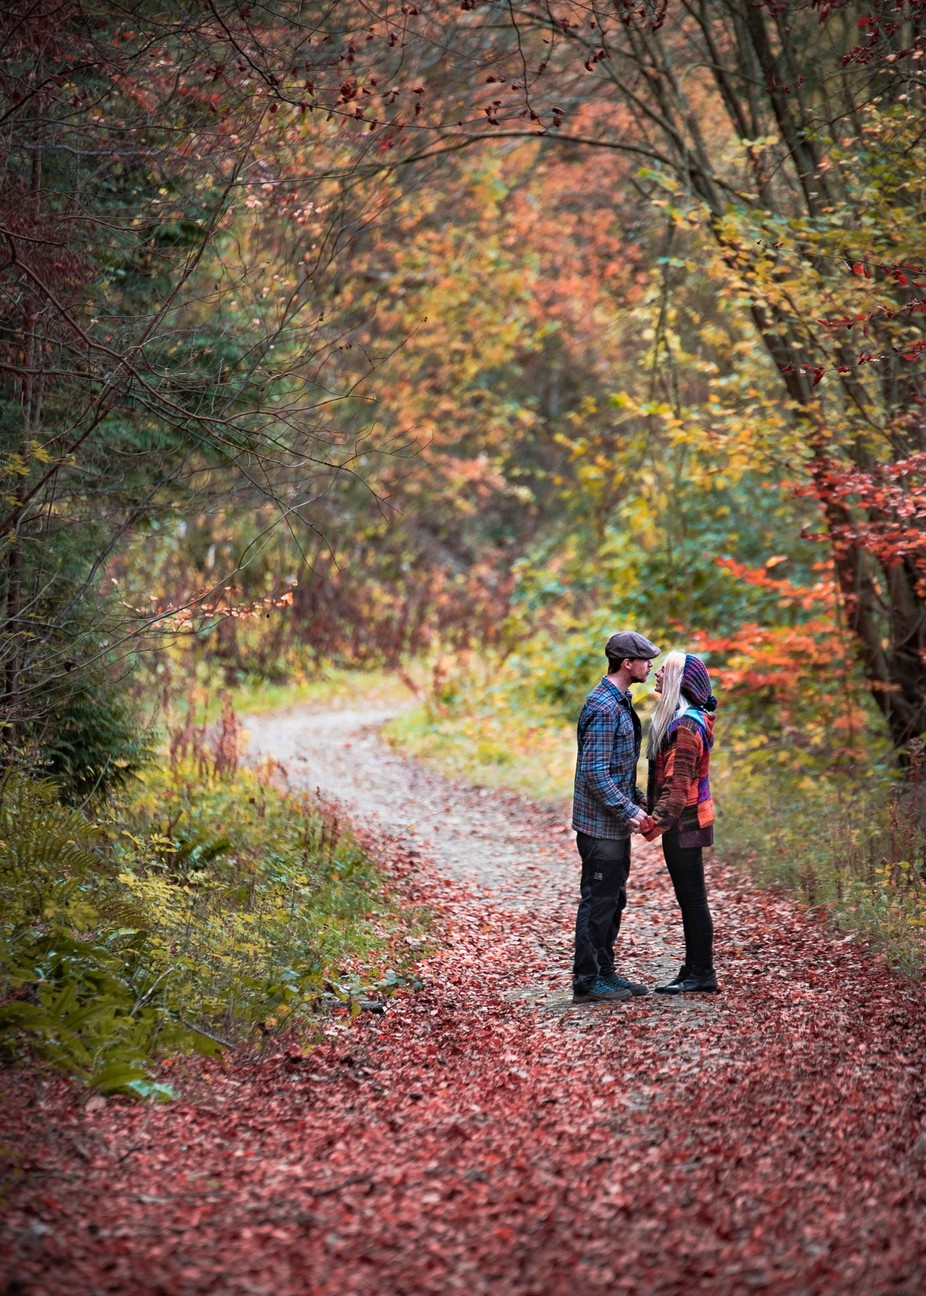 autumn love by pauljoinson - Rule Of Thirds Photo Contest v4